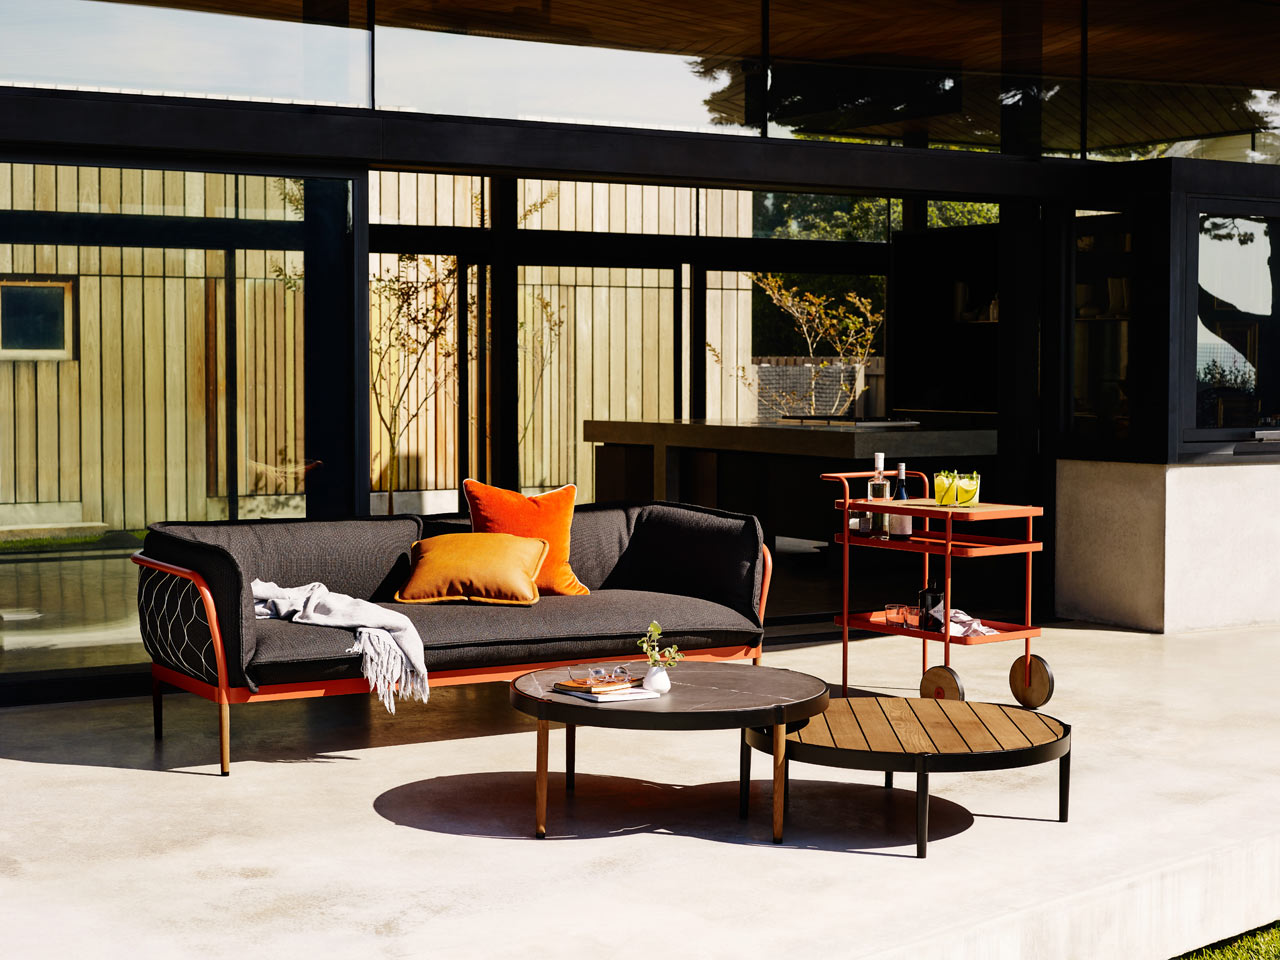 Milk Decoration Axel Vervoordt Trace The Latest Outdoor Lounge Collection From Tait